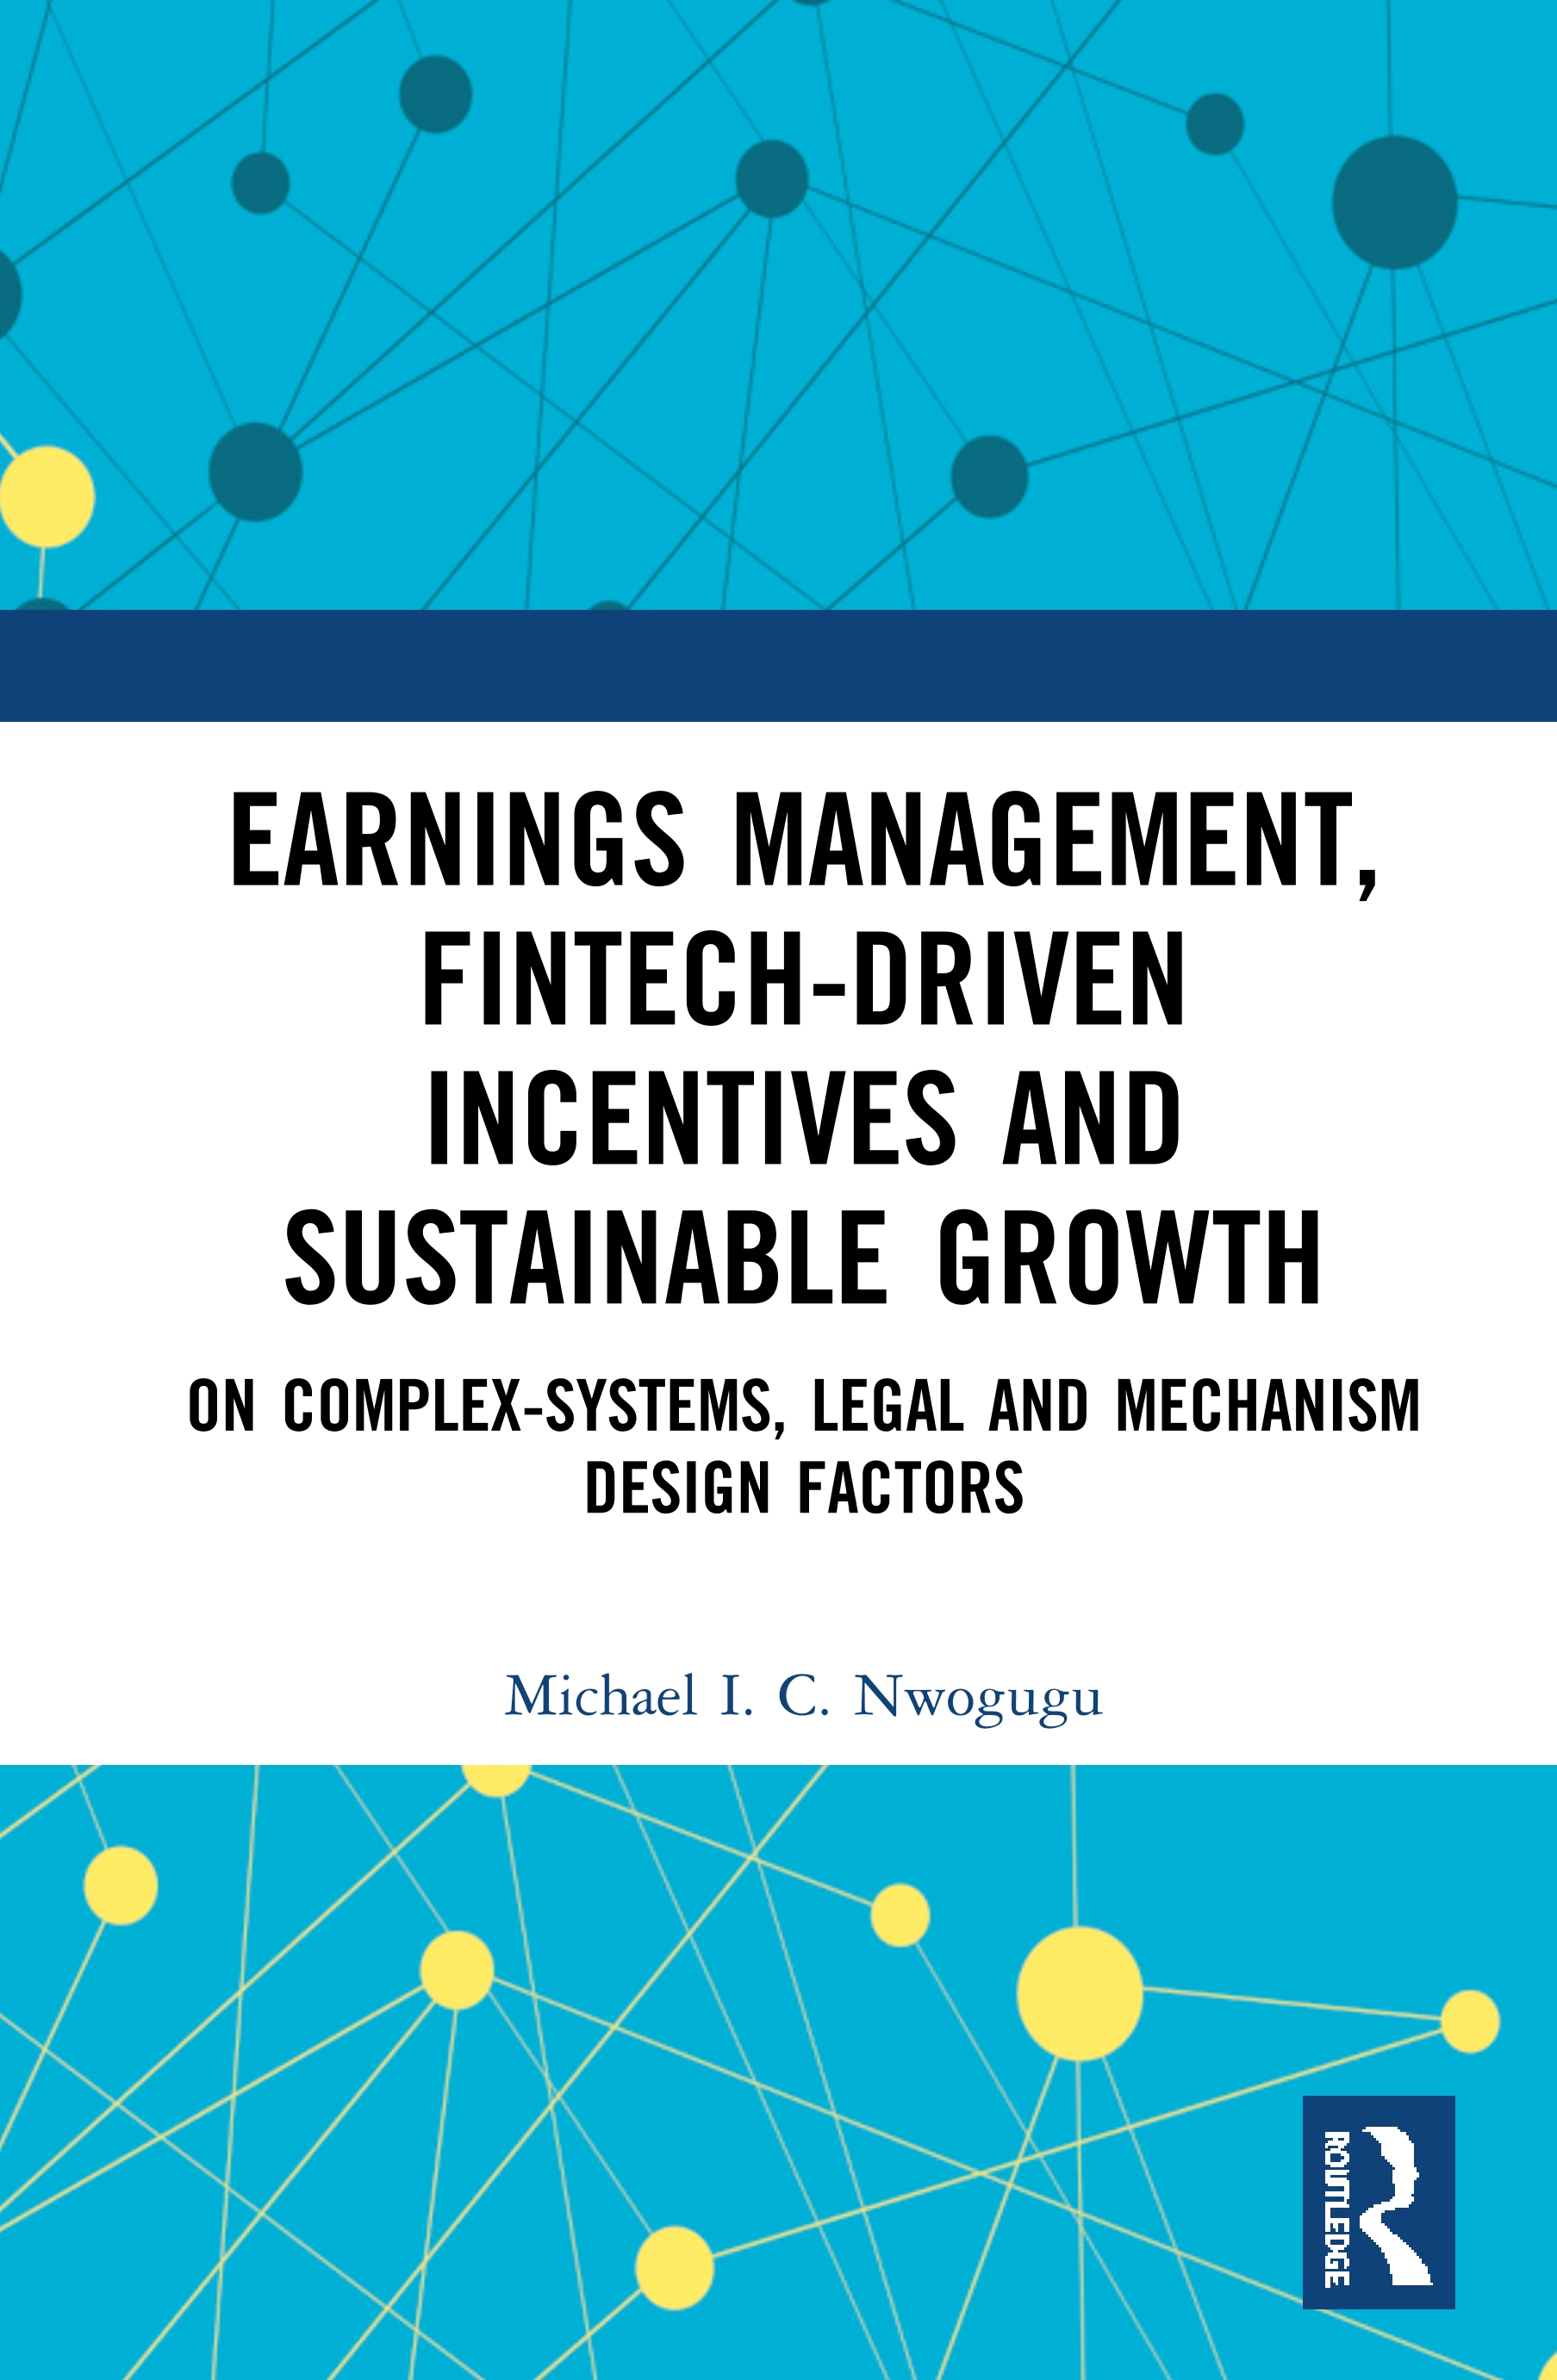 Earnings Management, Fintech-Driven Incentives and Sustainable Growth: On Complex Systems, Legal and Mechanism Design Factors book cover